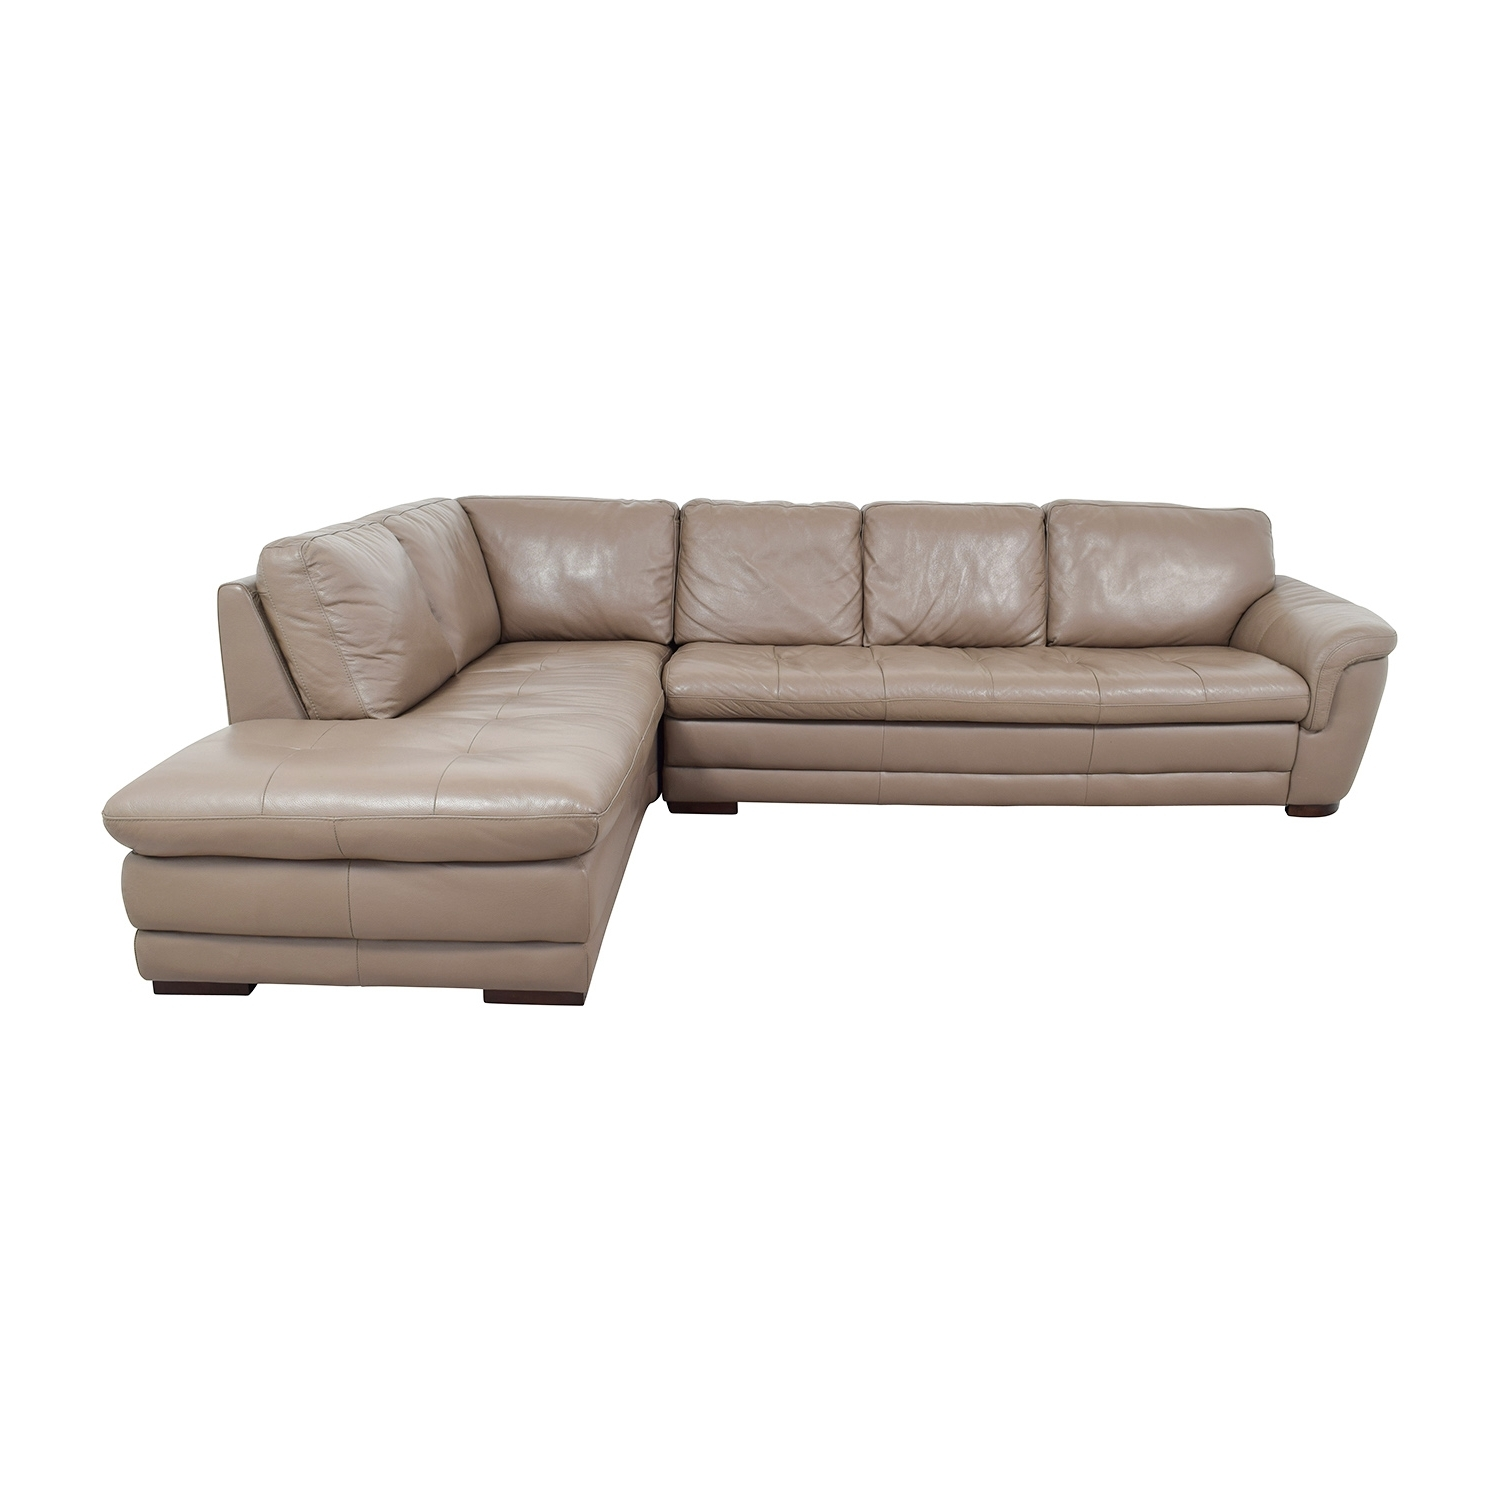 [%74% Off – Raymour And Flanigan Raymour & Flanigan Tan Tufted Intended For 2018 Sectional Sofas At Raymour And Flanigan|Sectional Sofas At Raymour And Flanigan For Preferred 74% Off – Raymour And Flanigan Raymour & Flanigan Tan Tufted|Recent Sectional Sofas At Raymour And Flanigan In 74% Off – Raymour And Flanigan Raymour & Flanigan Tan Tufted|Well Known 74% Off – Raymour And Flanigan Raymour & Flanigan Tan Tufted With Sectional Sofas At Raymour And Flanigan%] (View 2 of 15)